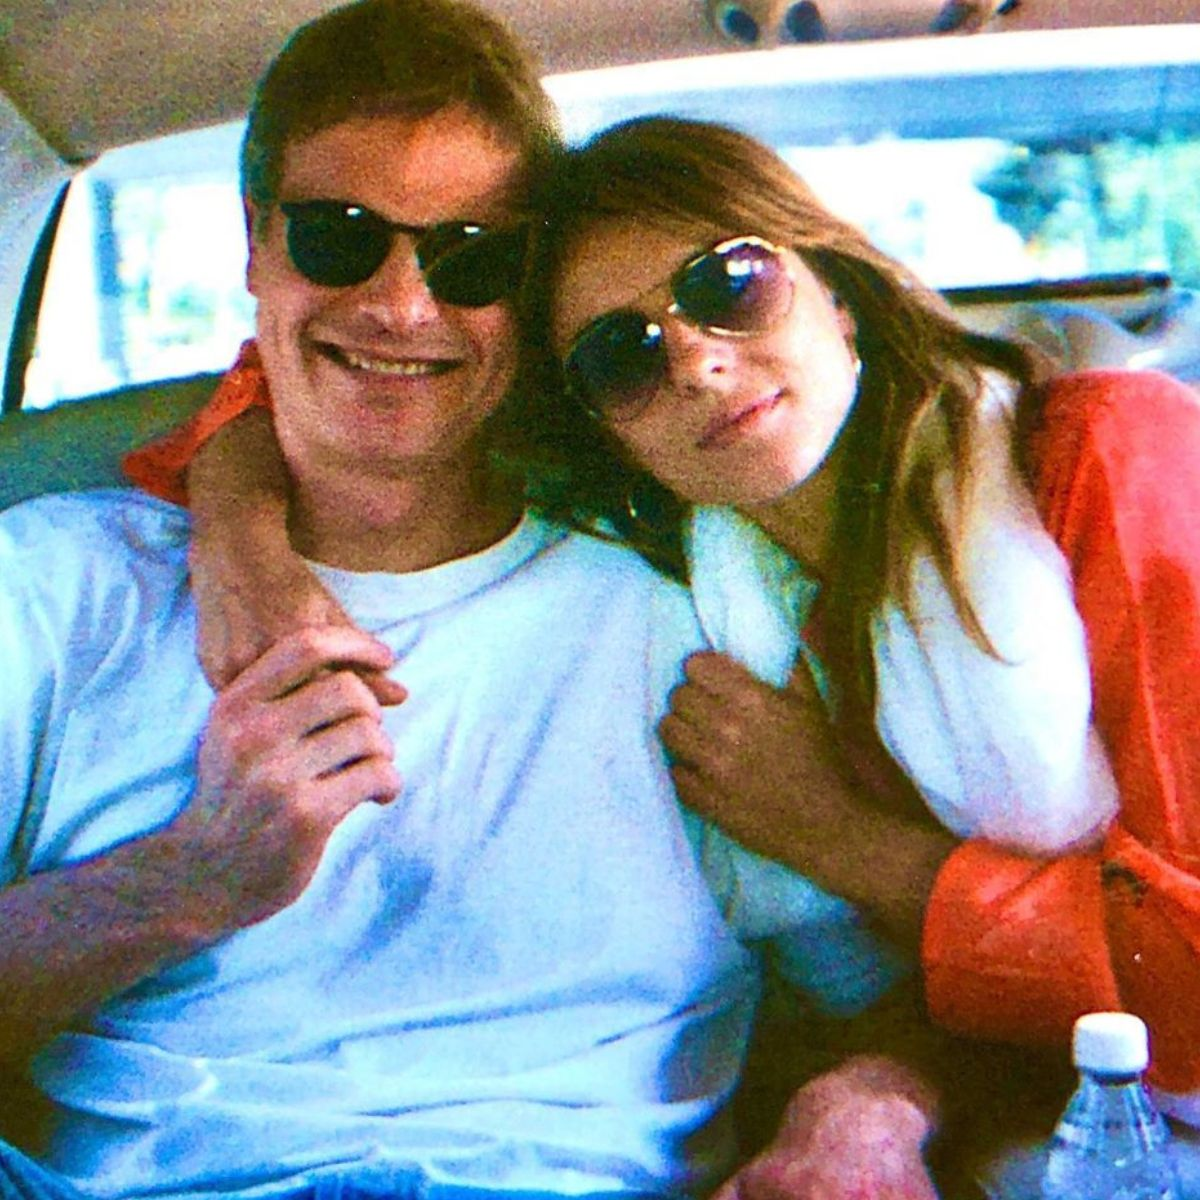 Elizabeth Hurley Reminisces Her Time With Ex Steve Bing Saddened Beyond Belief It S A Terrible End In 2020 Elizabeth Hurley Liz Hurley Son Film Writer